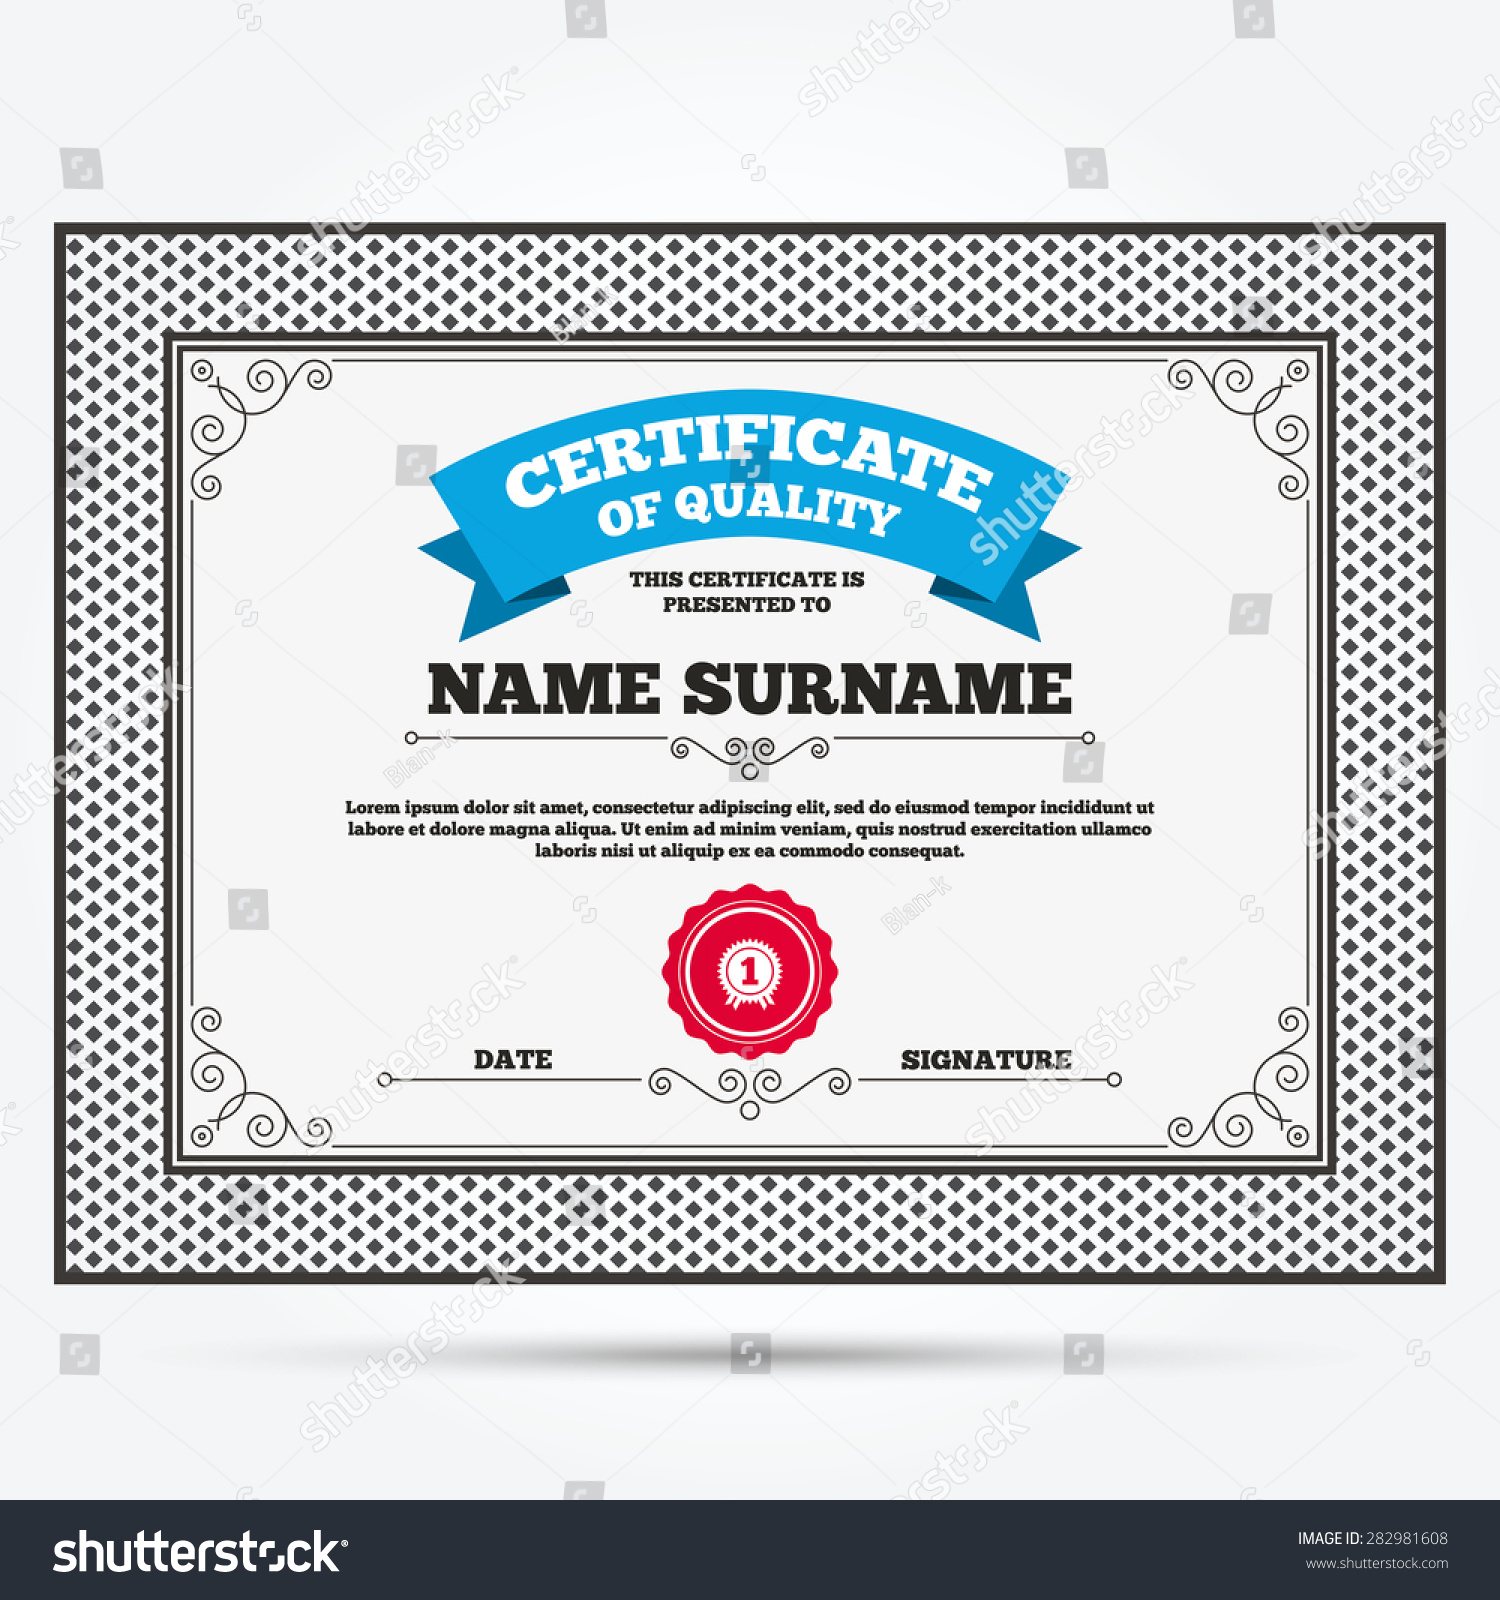 1st place certificate